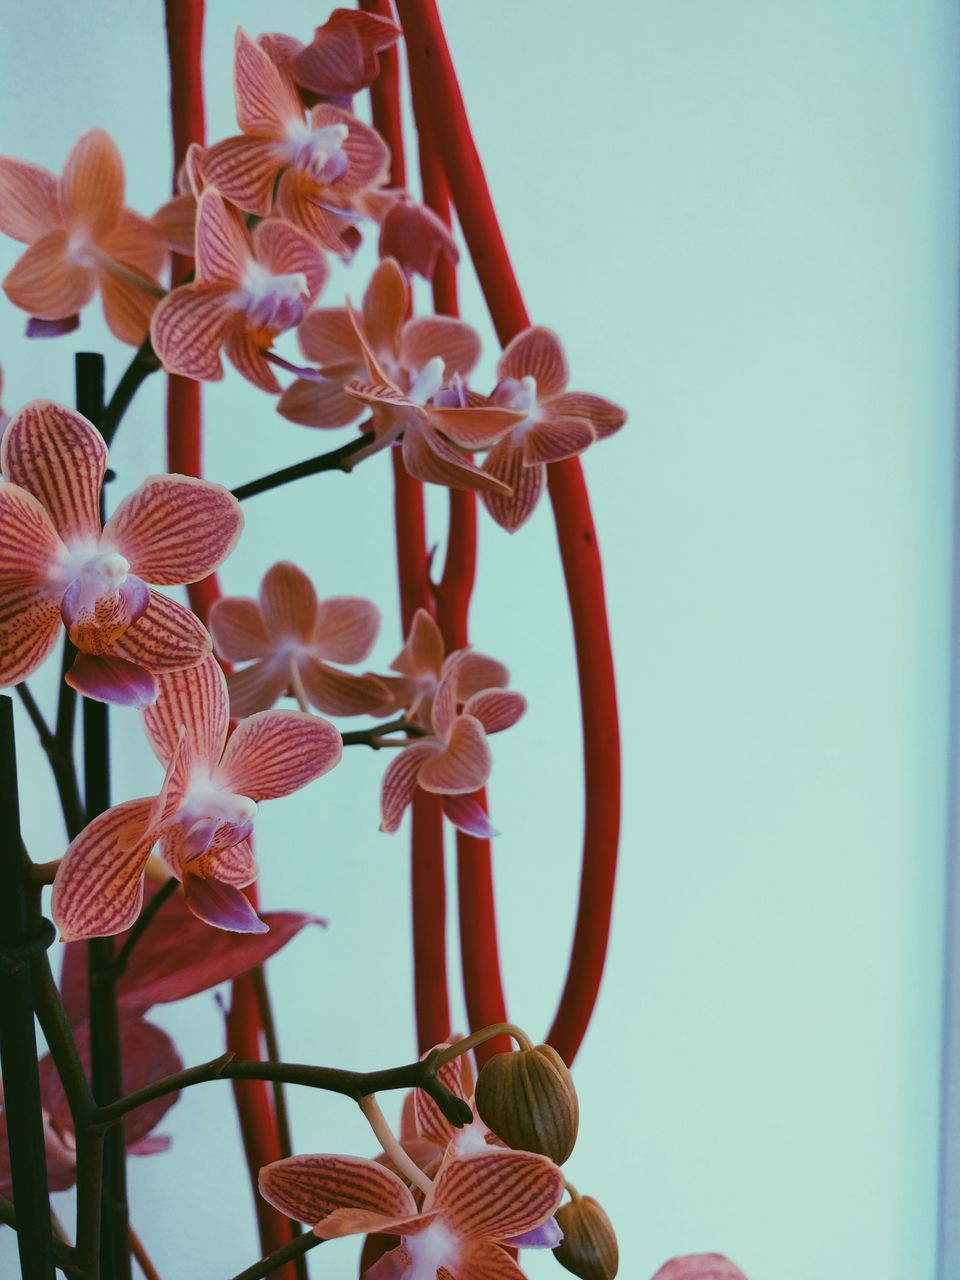 no people, close-up, clear sky, beauty in nature, flower, growth, day, fragility, outdoors, nature, freshness, flower head